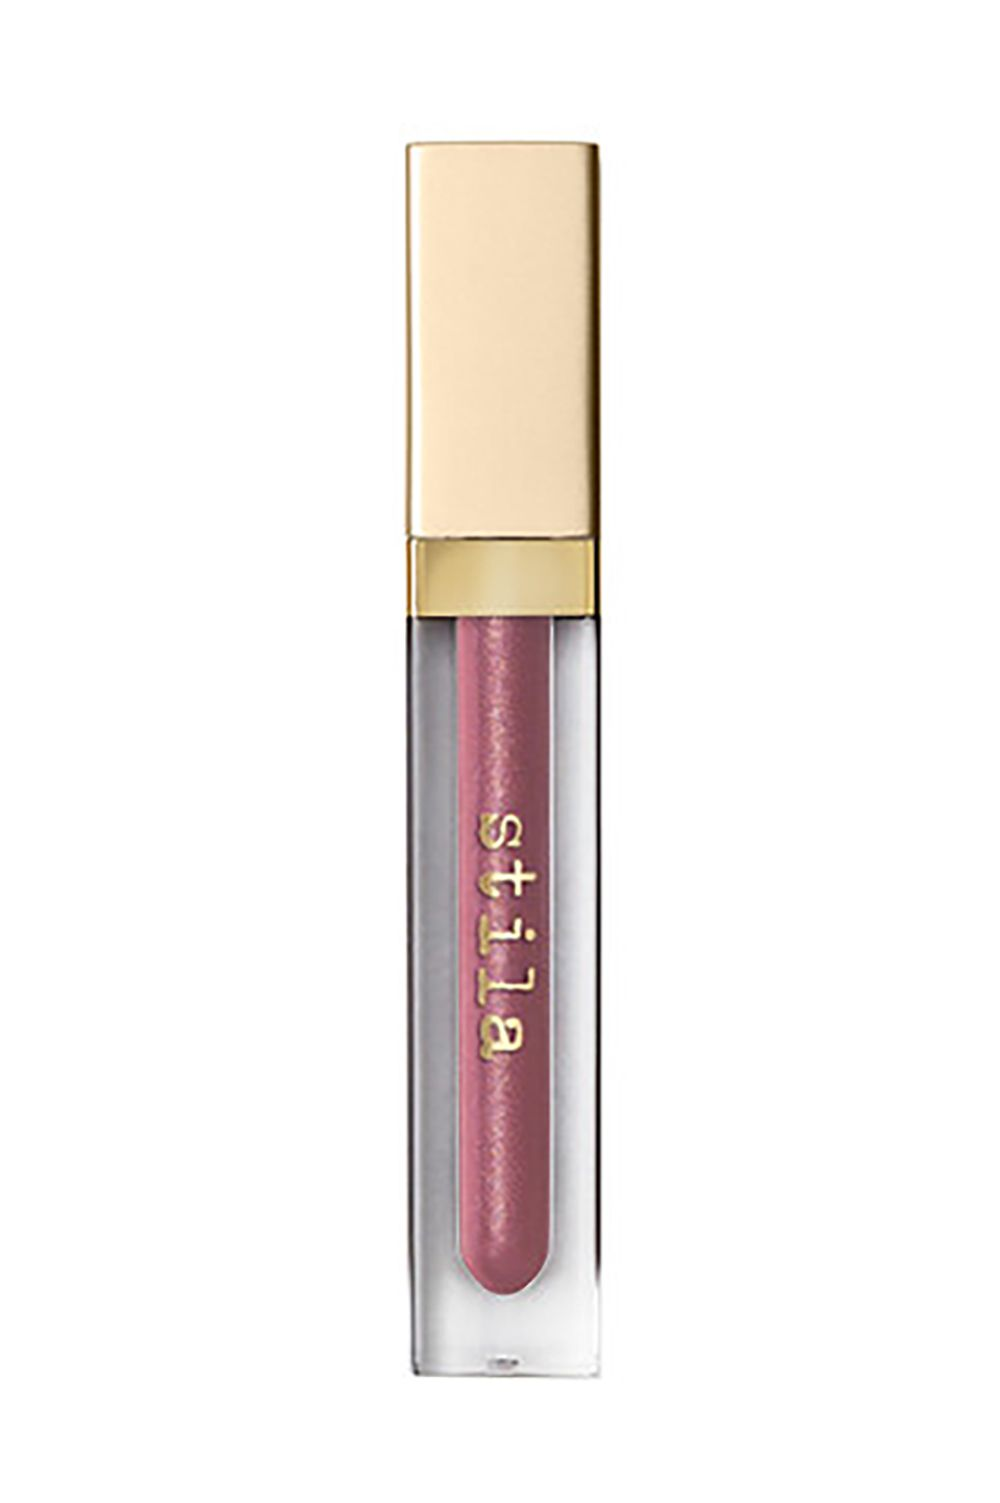 Shimmery Rose Stila Beauty Boss Lip Gloss in Synergy, $15 SHOP IT Spring urges you have to more fun with your makeup. This $15 steal is a pinky rose shade infused with specks of gold shimmer when you're feeling extra.